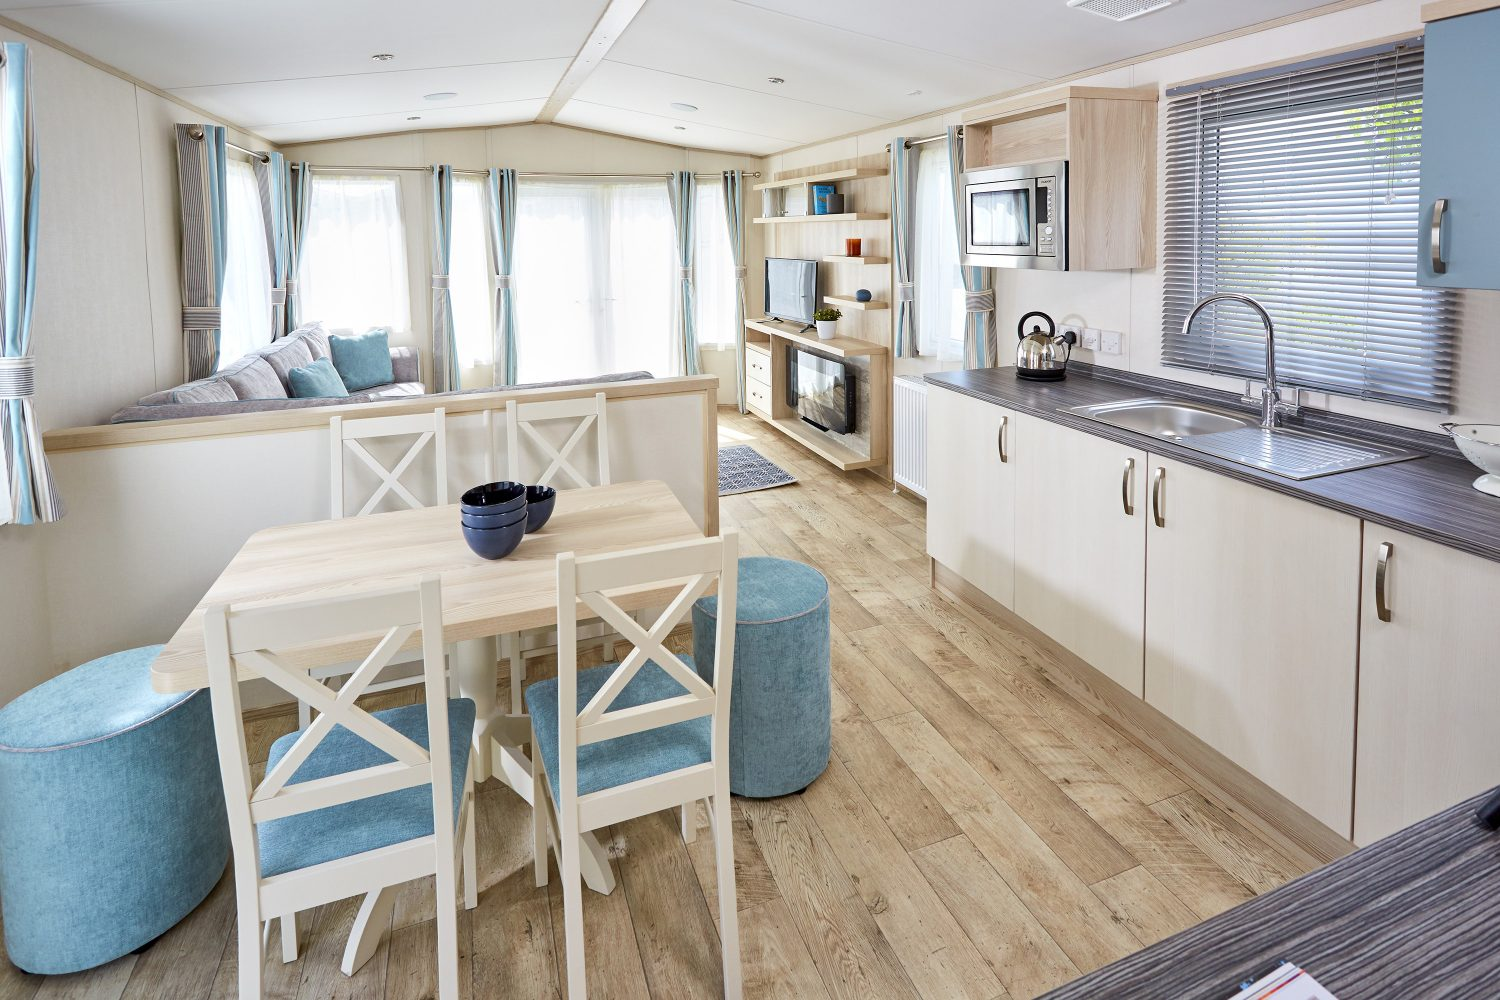 Dorset Holiday Homes for Sale